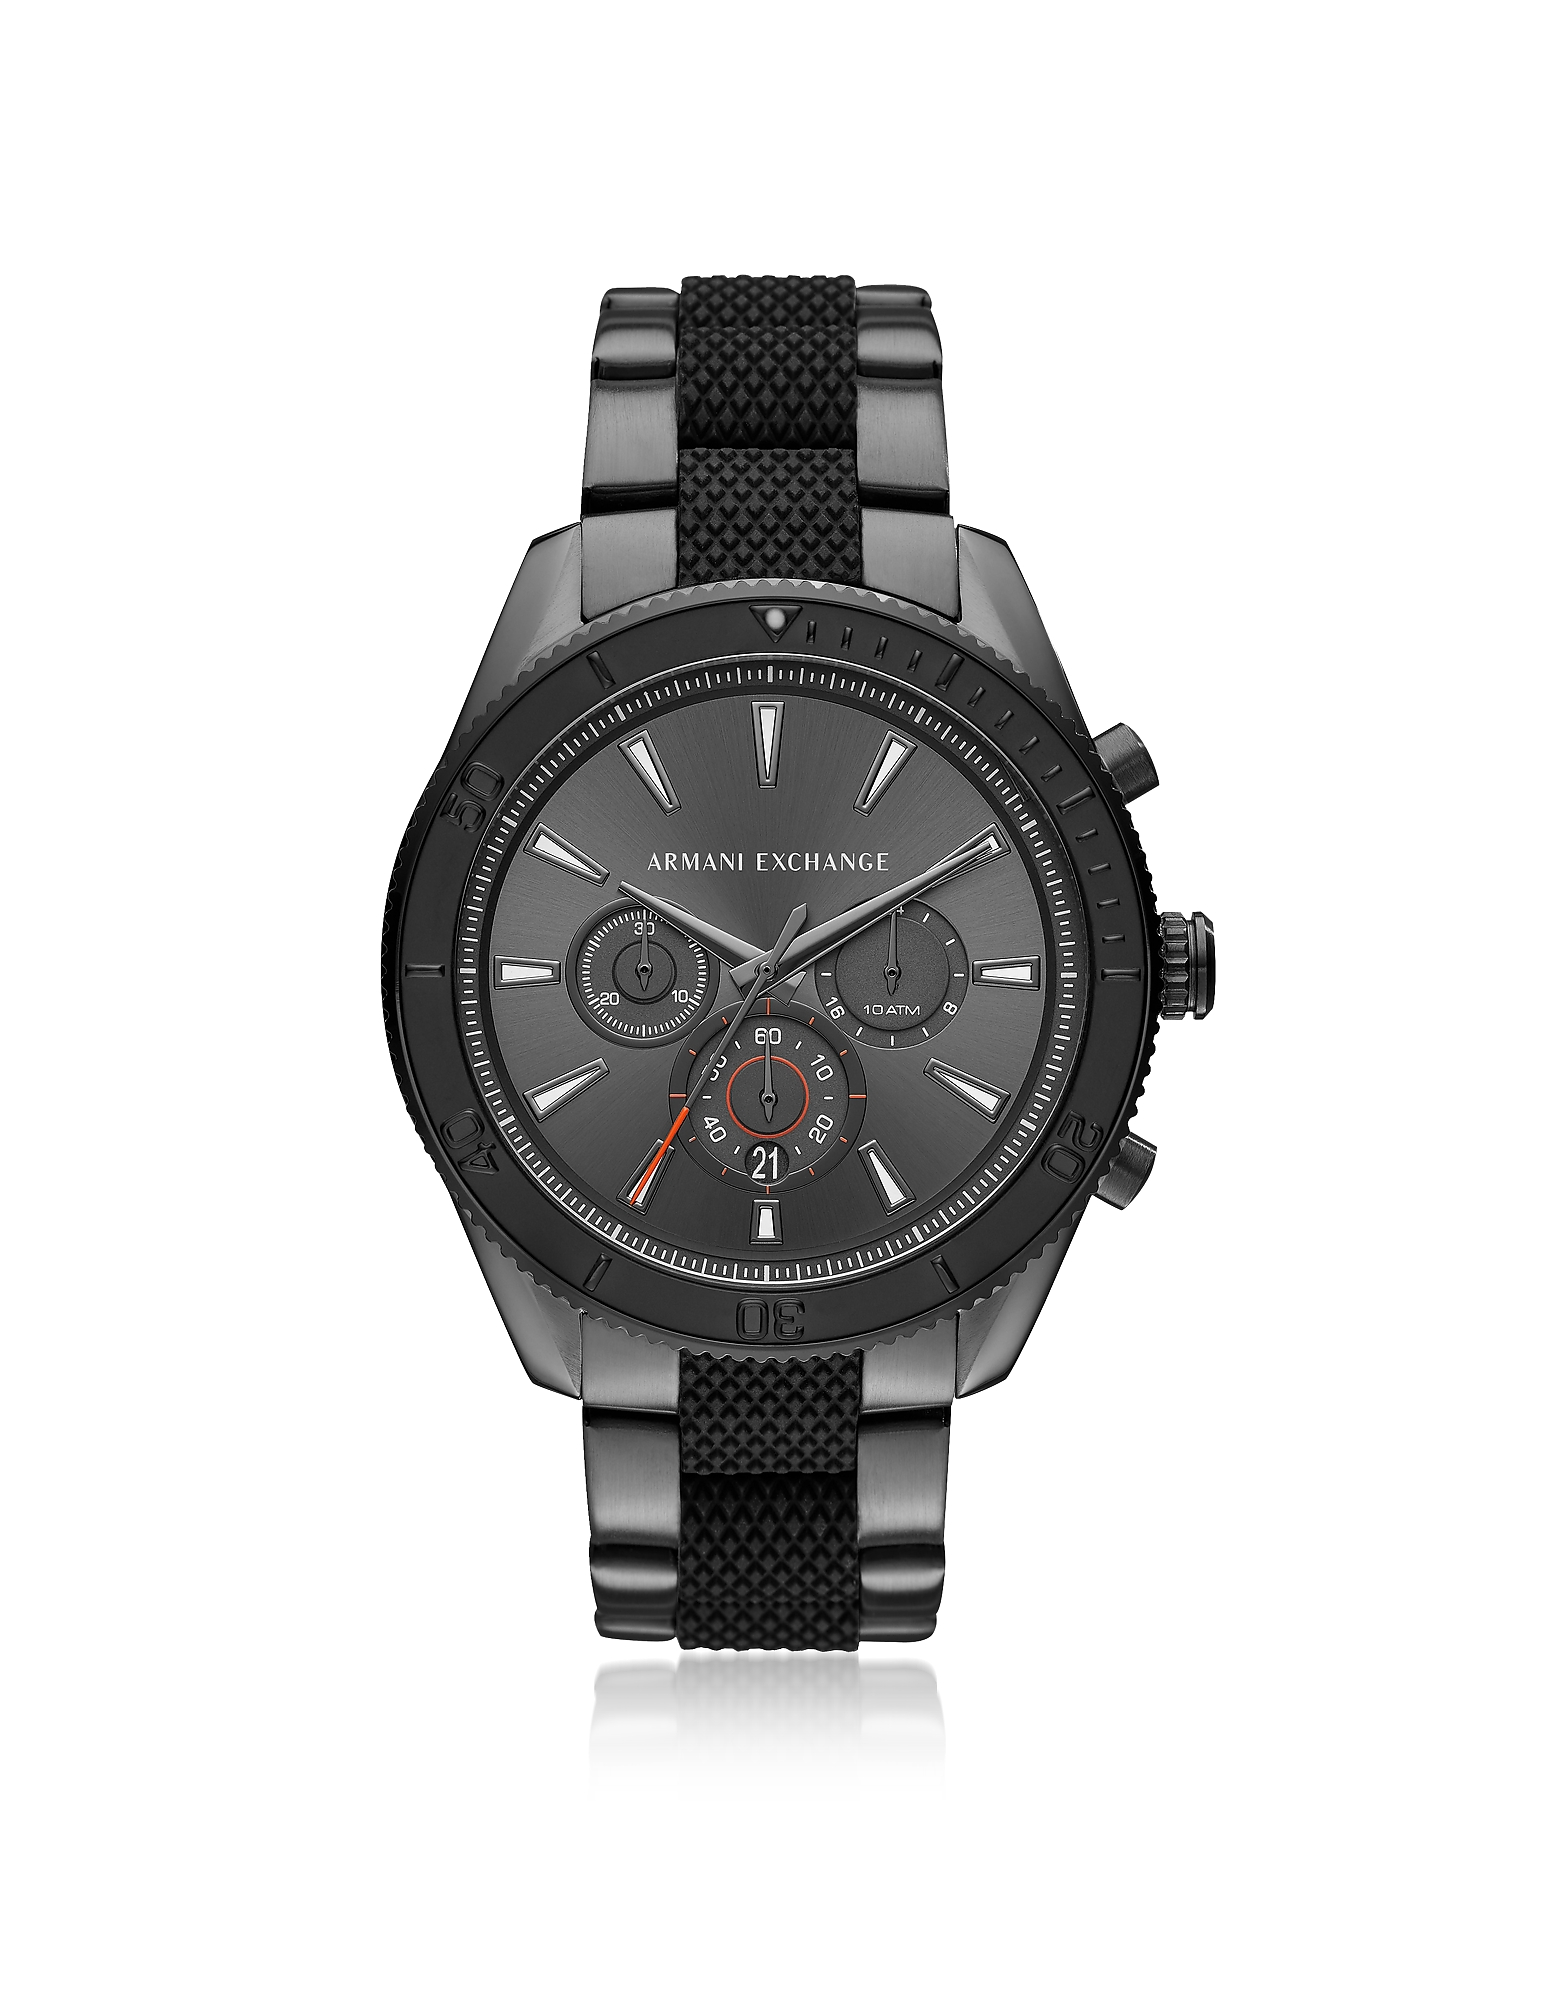 Image of Armani Exchange Designer Men's Watches, AIX Grey Dial and Gunmetal Men's Chronograph Watch